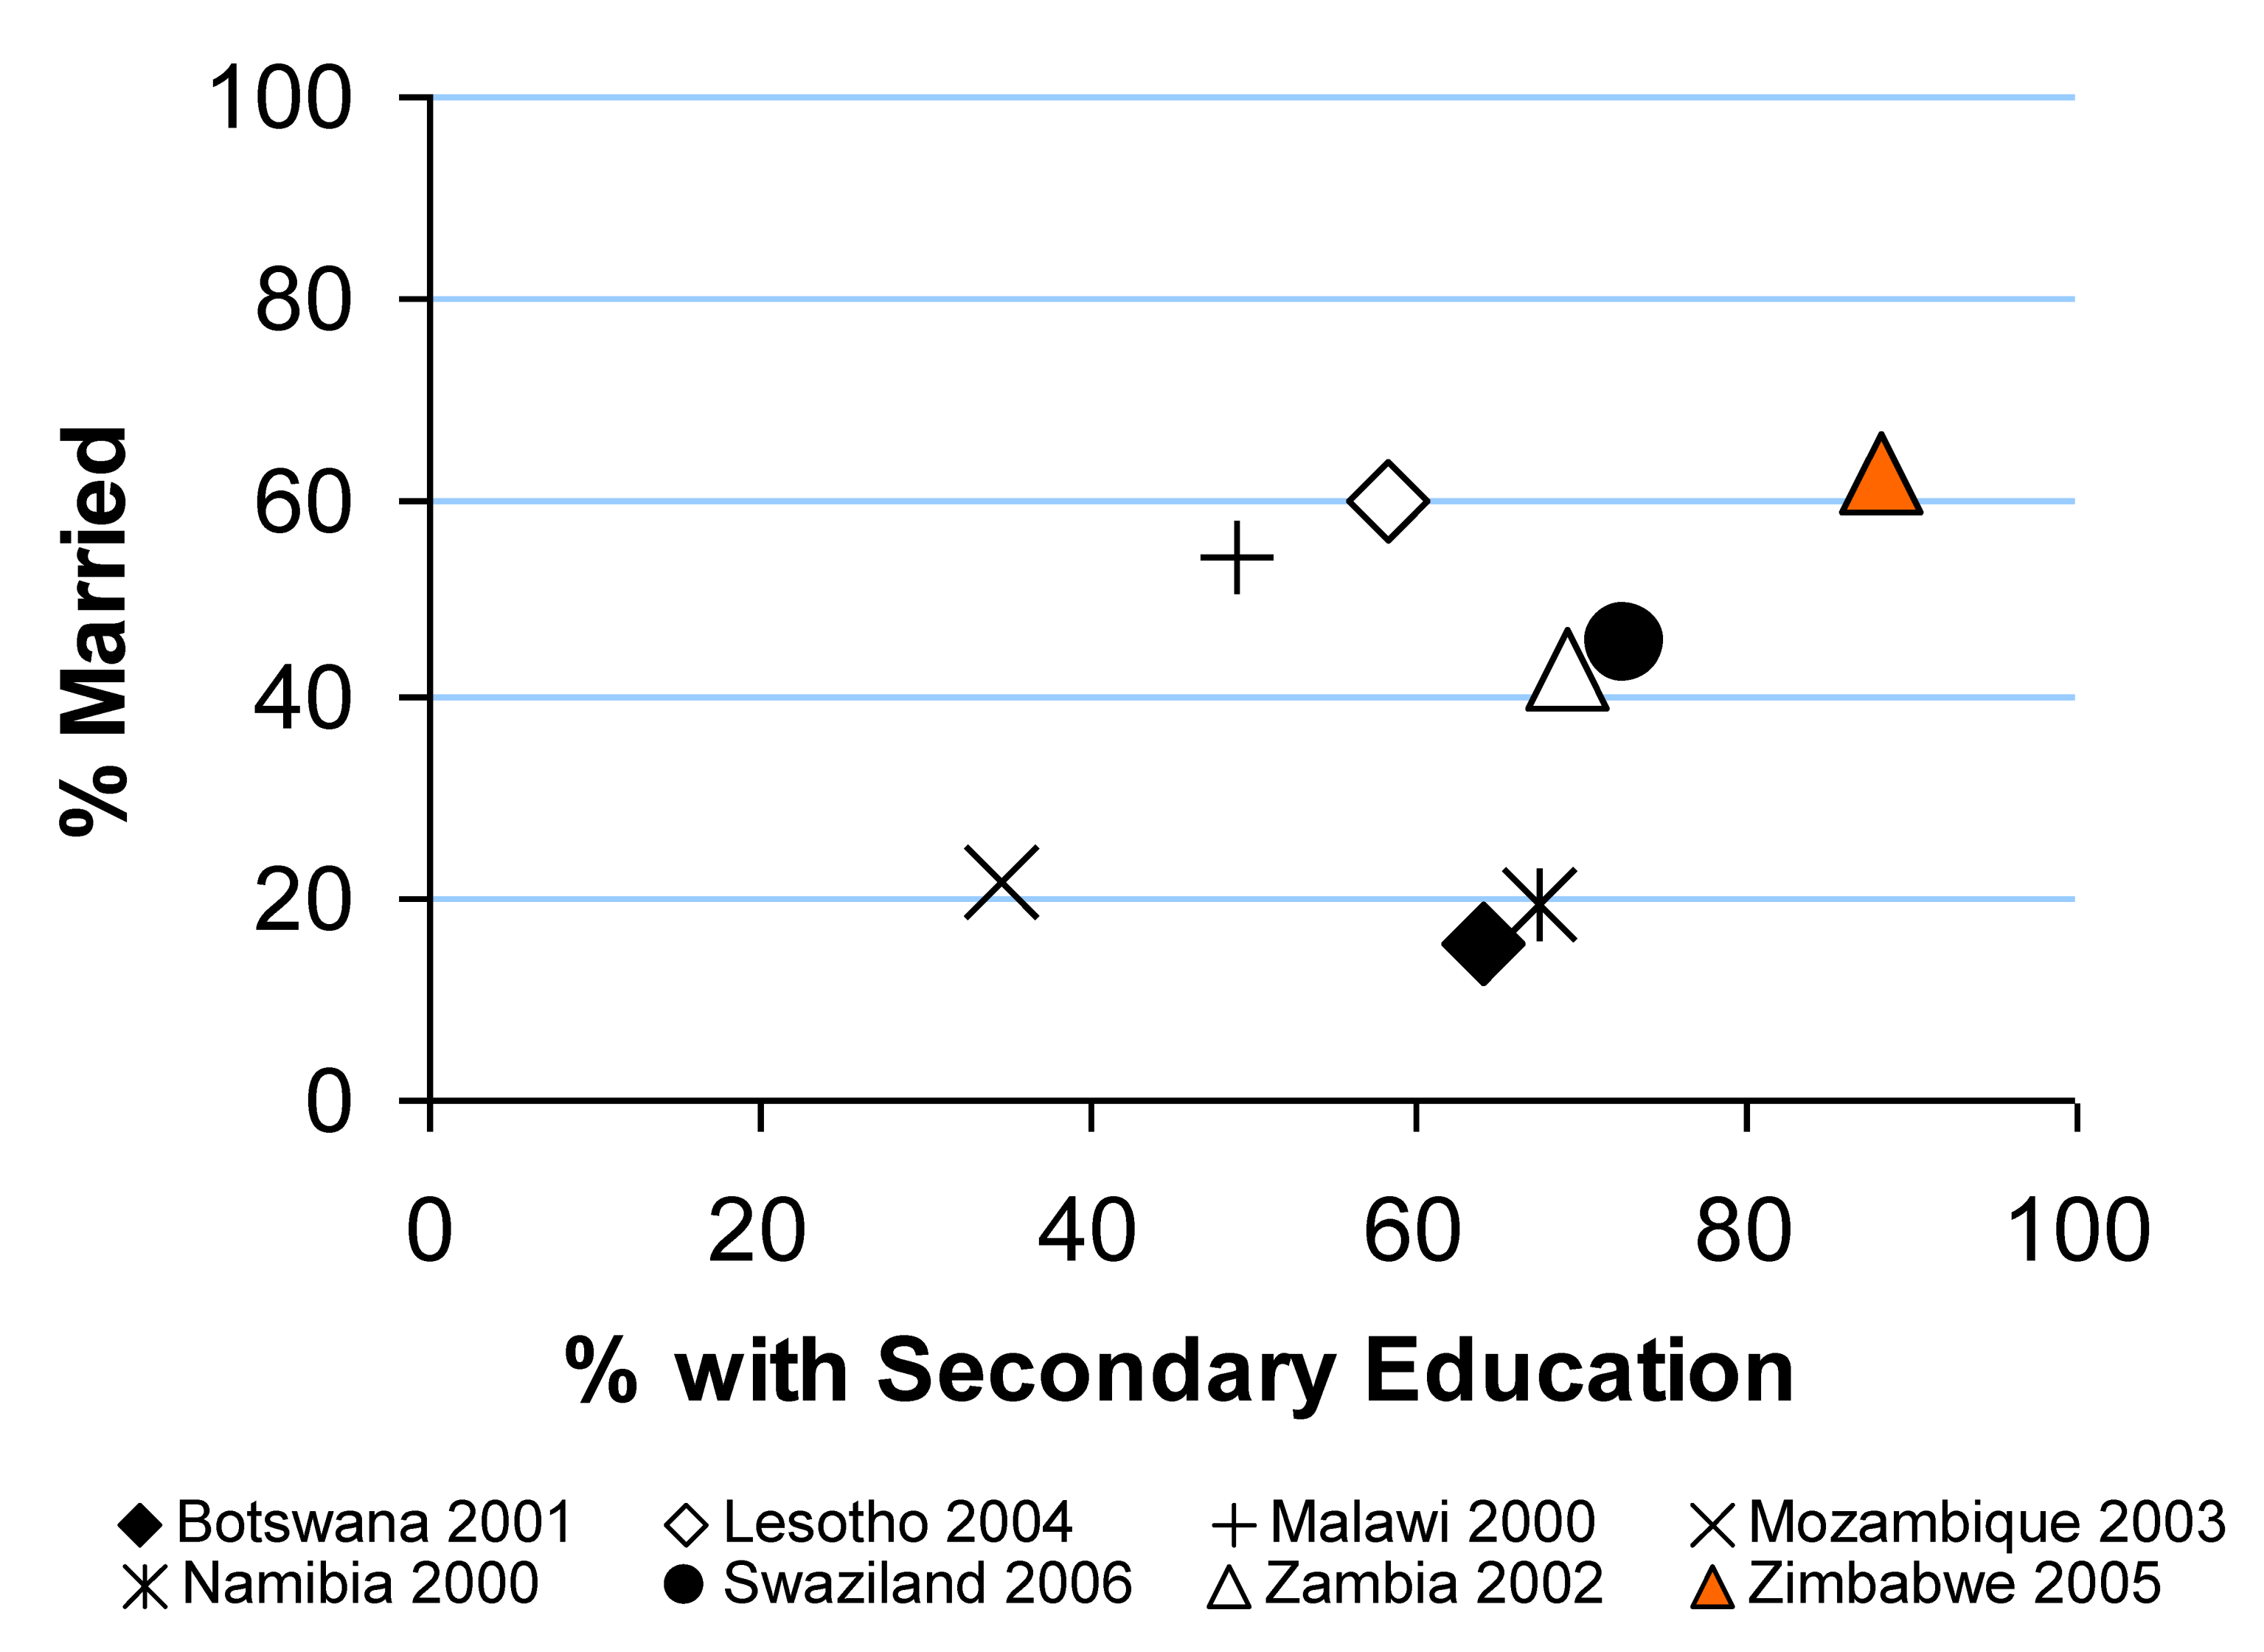 Levels of marriage and secondary education among men in urban areas in eight southern African countries.